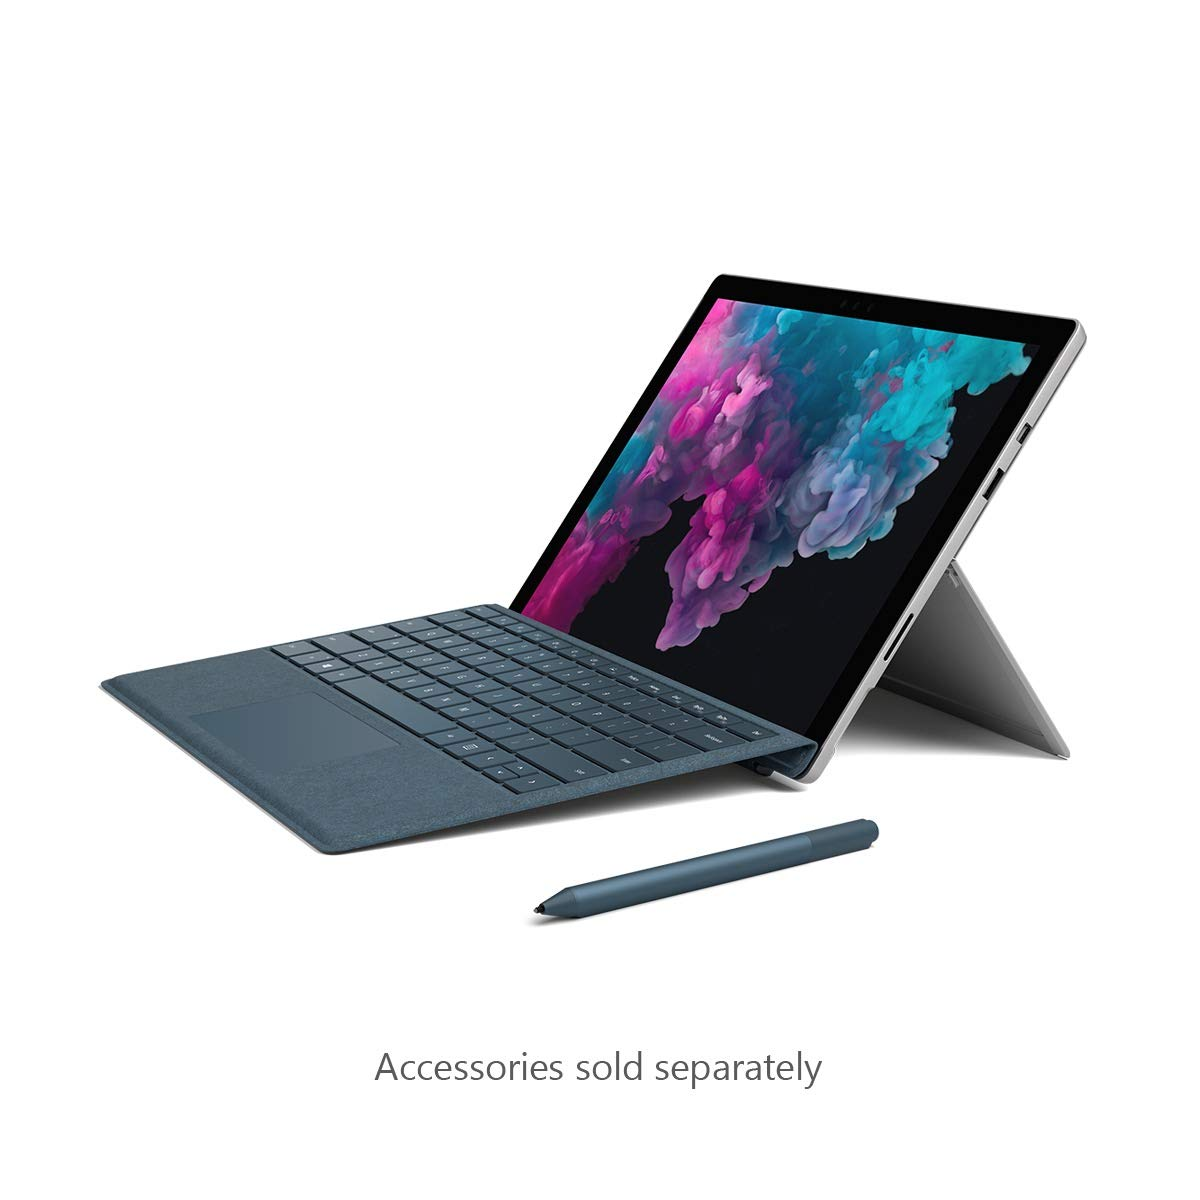 Microsoft Surface Pro 6 (Intel Core i5, 8GB RAM, 128GB) - Newest Version, Platinum